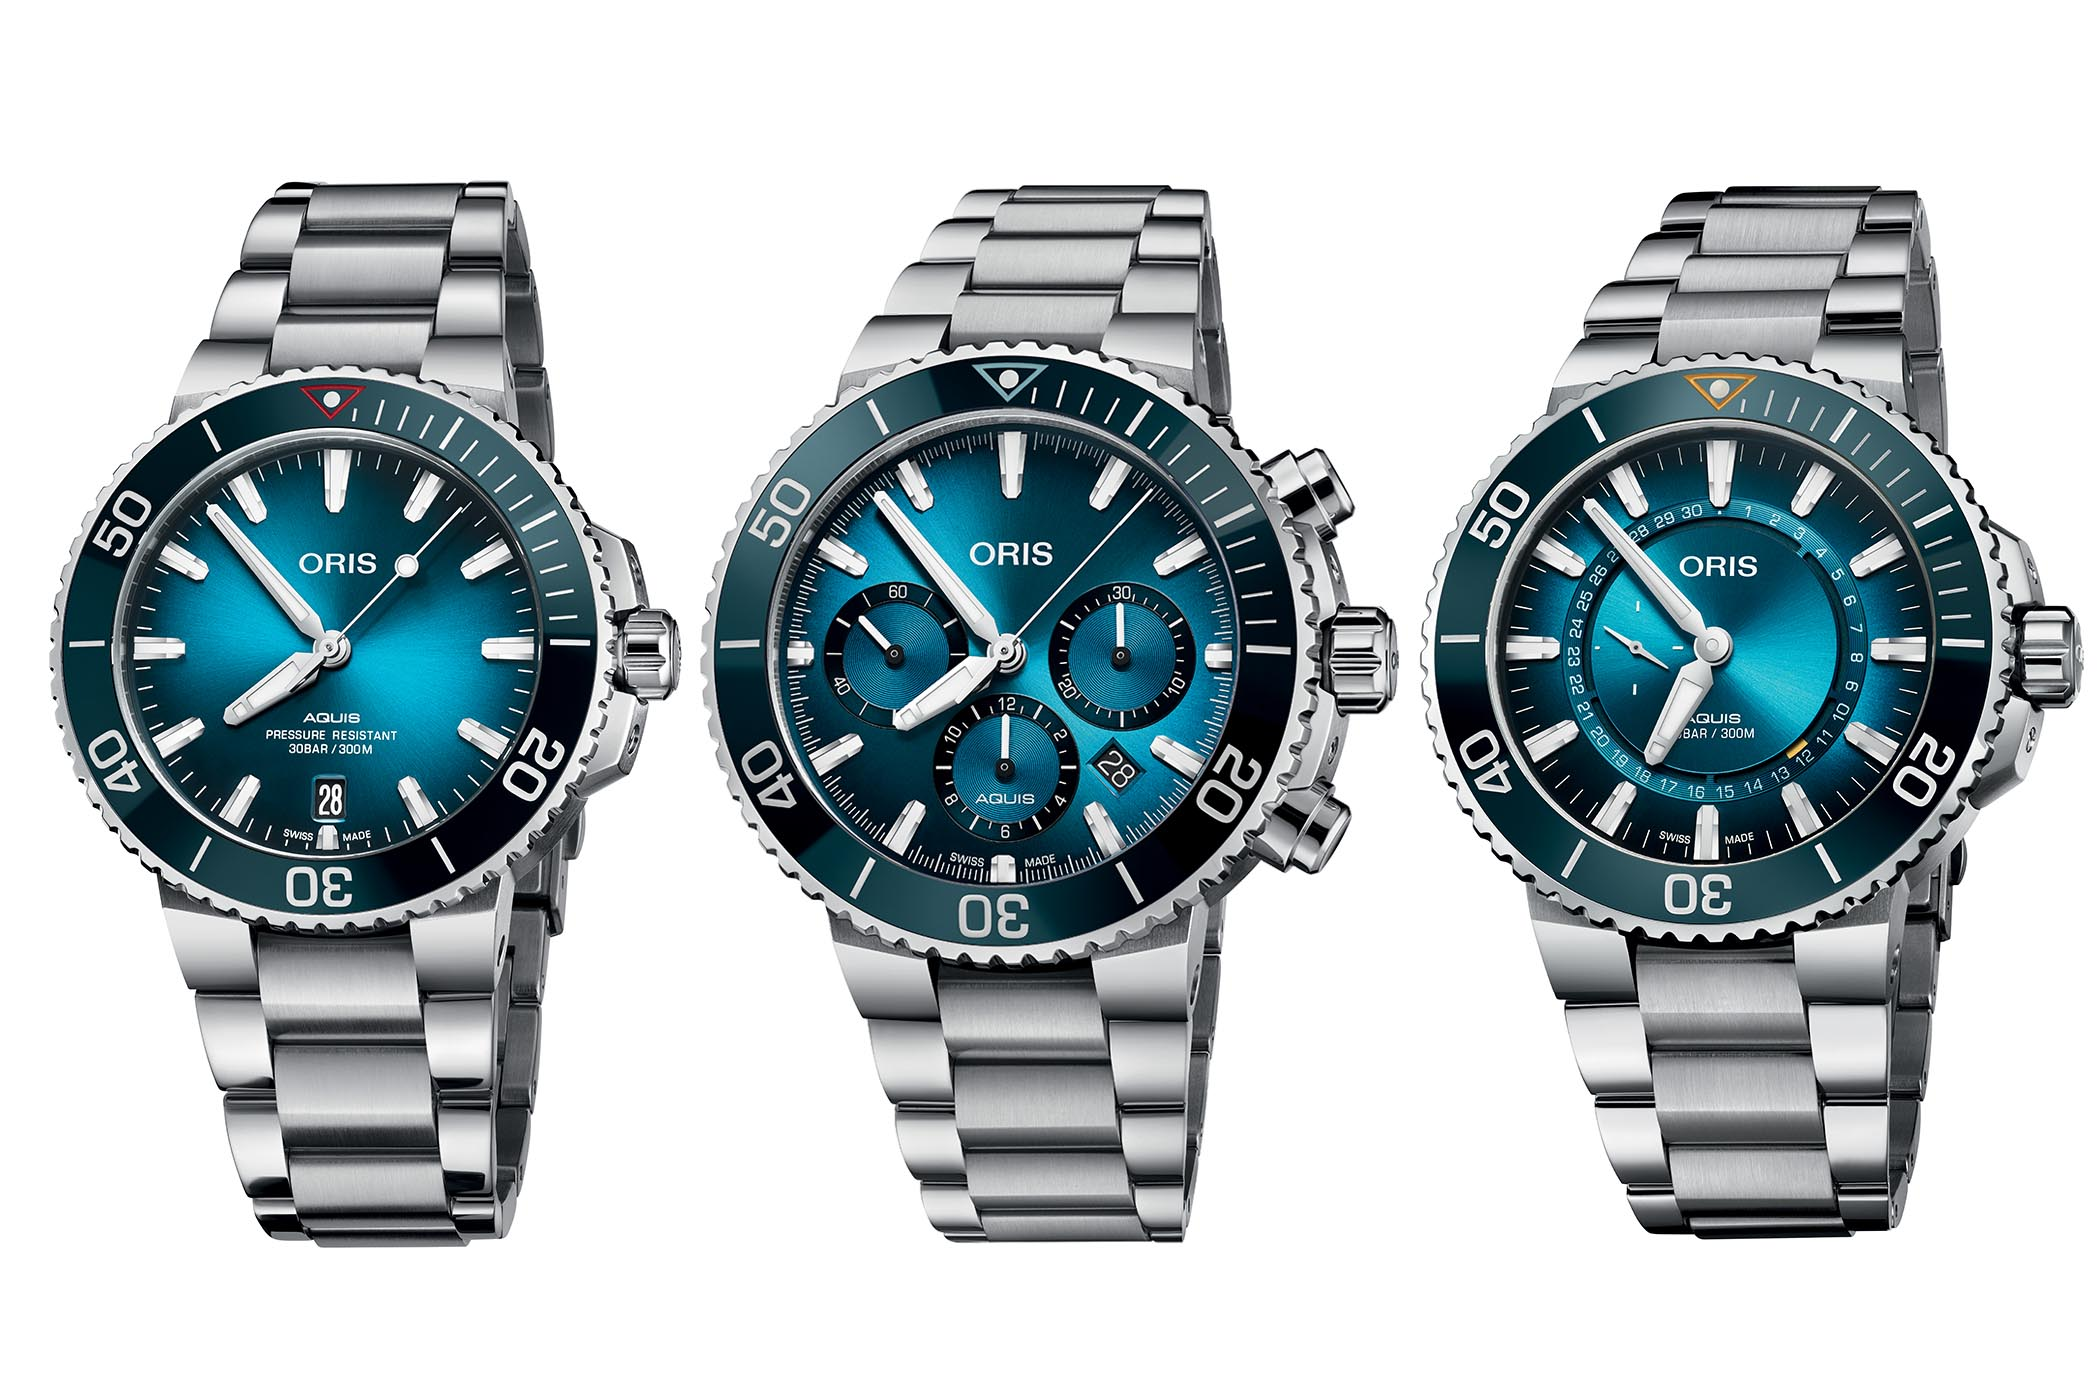 Oris Ocean Trilogy - Oris Great Barrier Reef Limited Edition III - Oris Clean Ocean Limited Edition - Oris Blue Whale Limited Edition